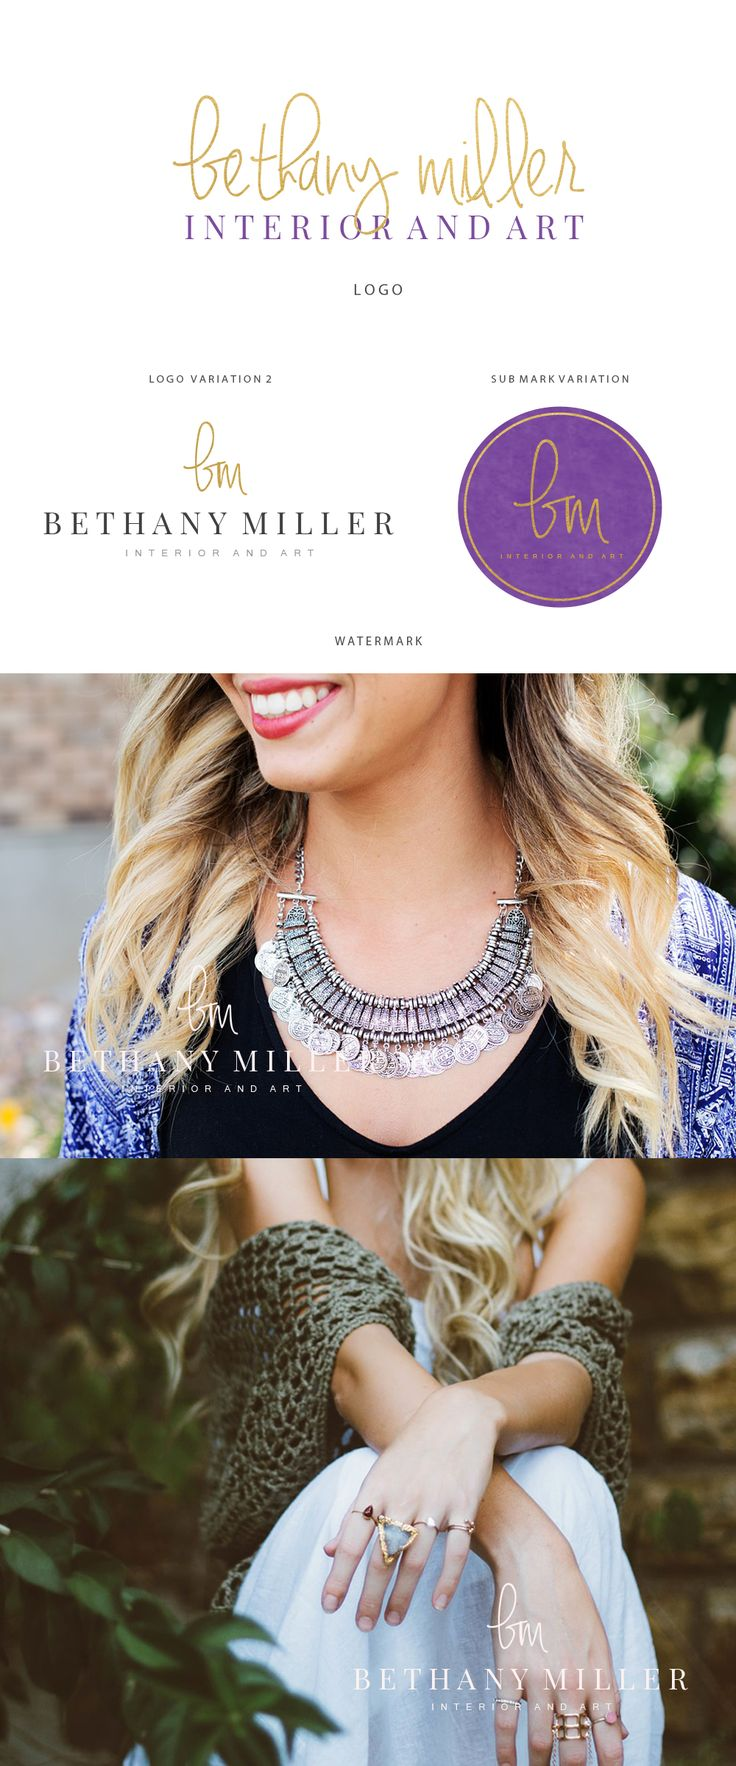 Branding kit logo design -Initials logo design - Gold purple logo design - Interior logo design - Photography logo desgn - Art logo design  A premade logo is a quick and easy way to  get a beautiful and professional looking brand identity. This premade logo will be modified with you shop name or personal name and tagline.. Pretty and affordable https://www.etsy.com/listing/481335355/branding-kit-logo-design-initials-logo?ref=shop_home_active_3